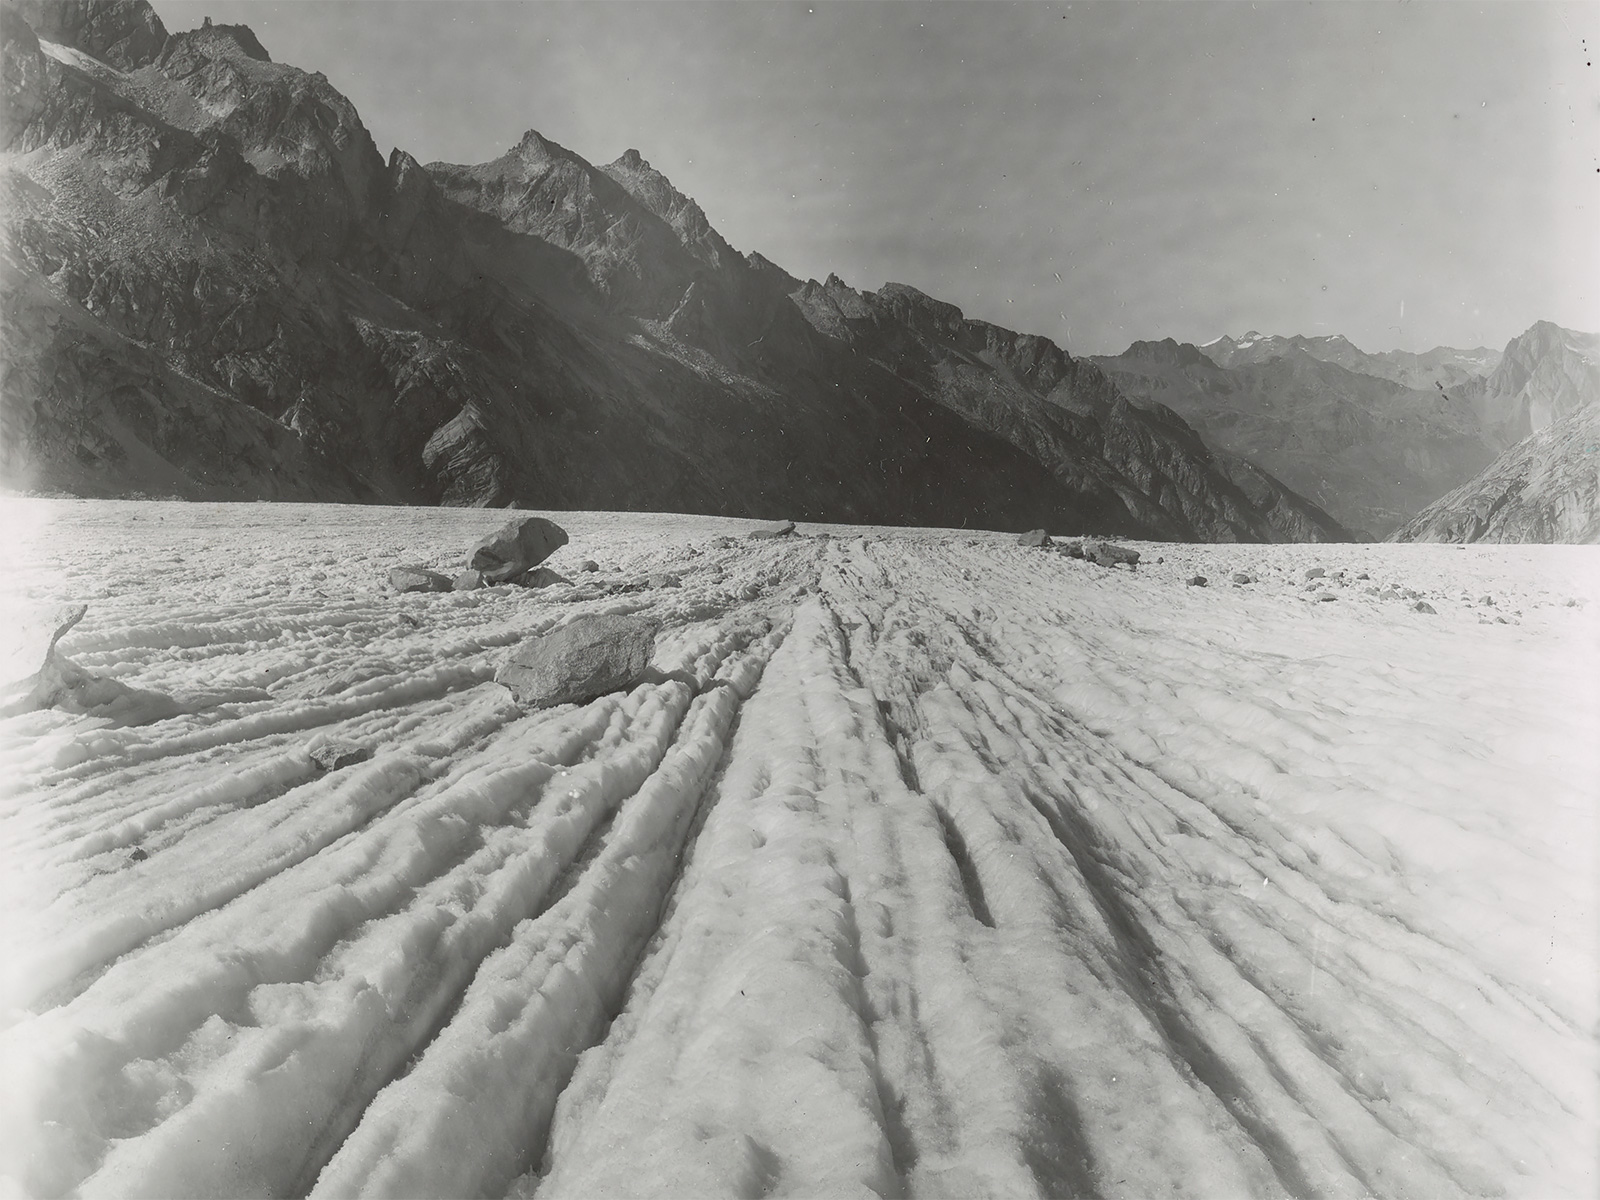 Forno Glacier photographed by H.F. Reid